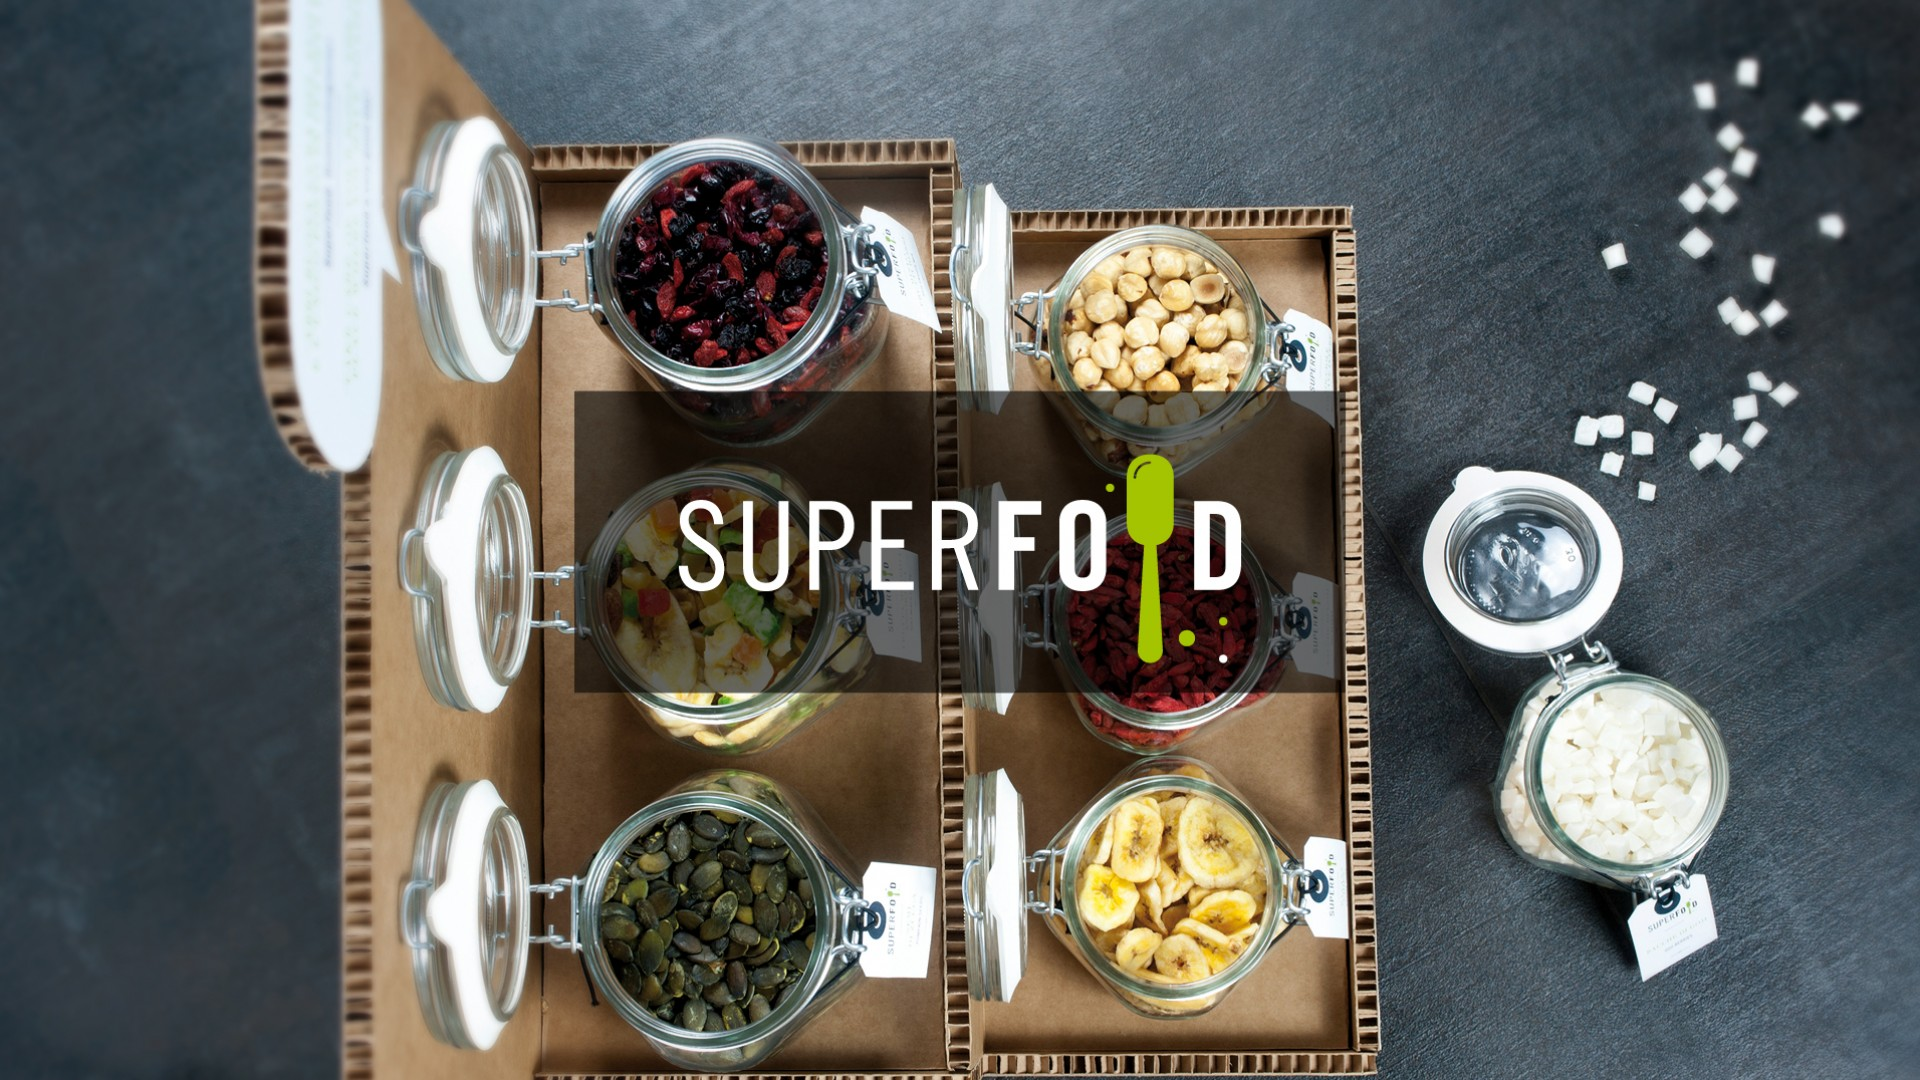 Offerta superfood